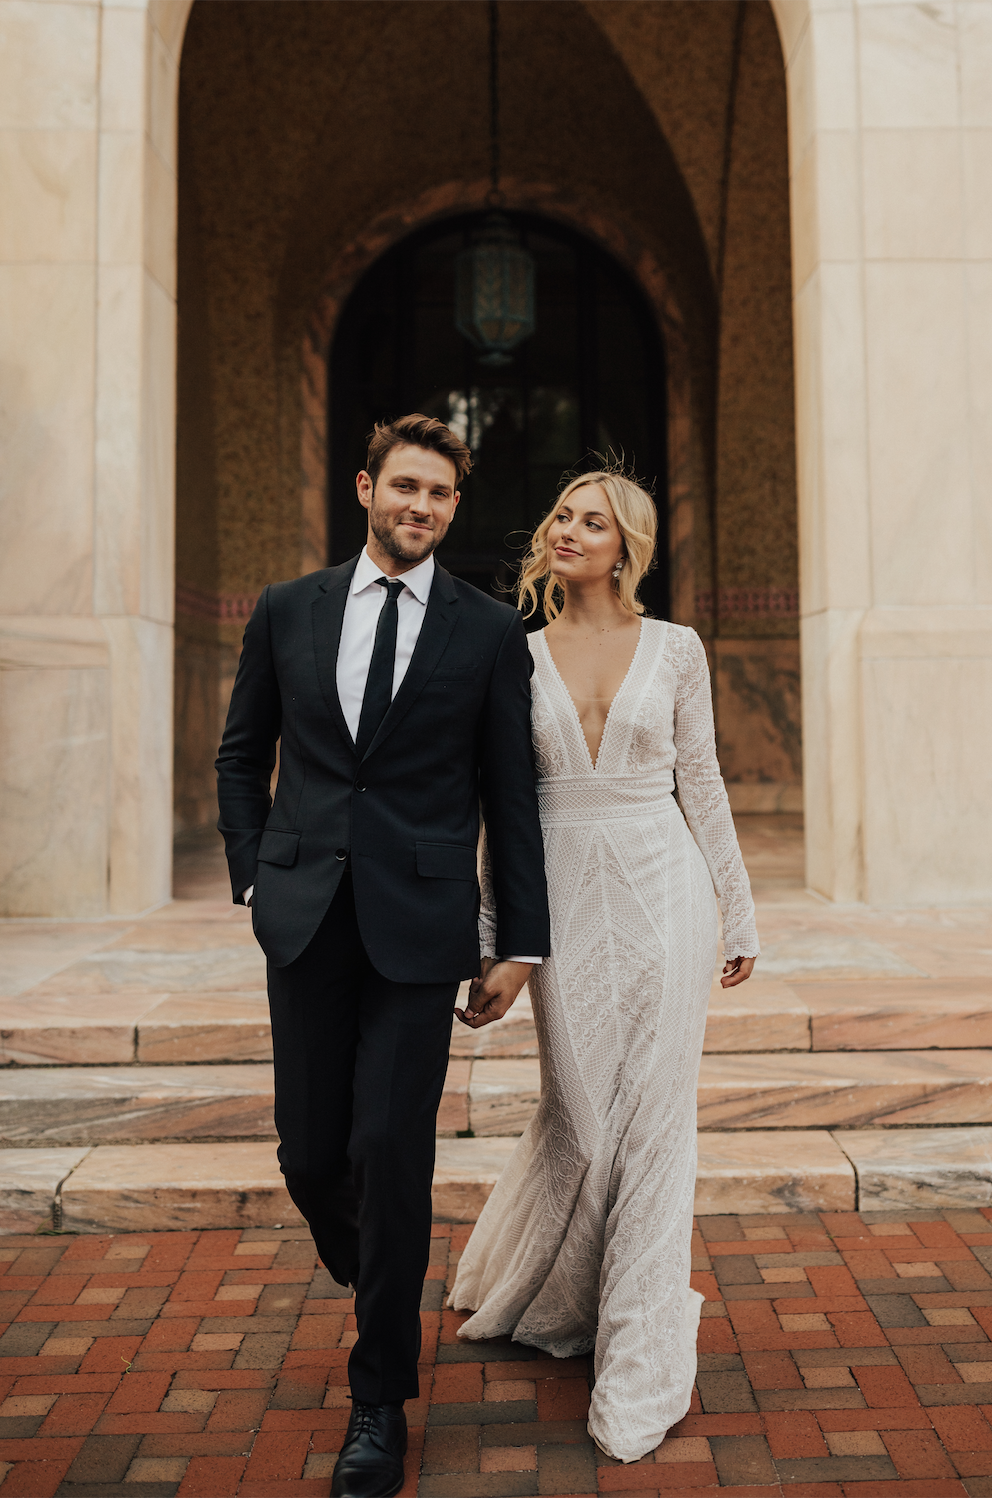 Walking into forever... featuring The Summer Gown | Photographer:  @christyljohnston Bride: @tor… | Courthouse wedding dress, Summer gowns,  Wedding dress long sleeve